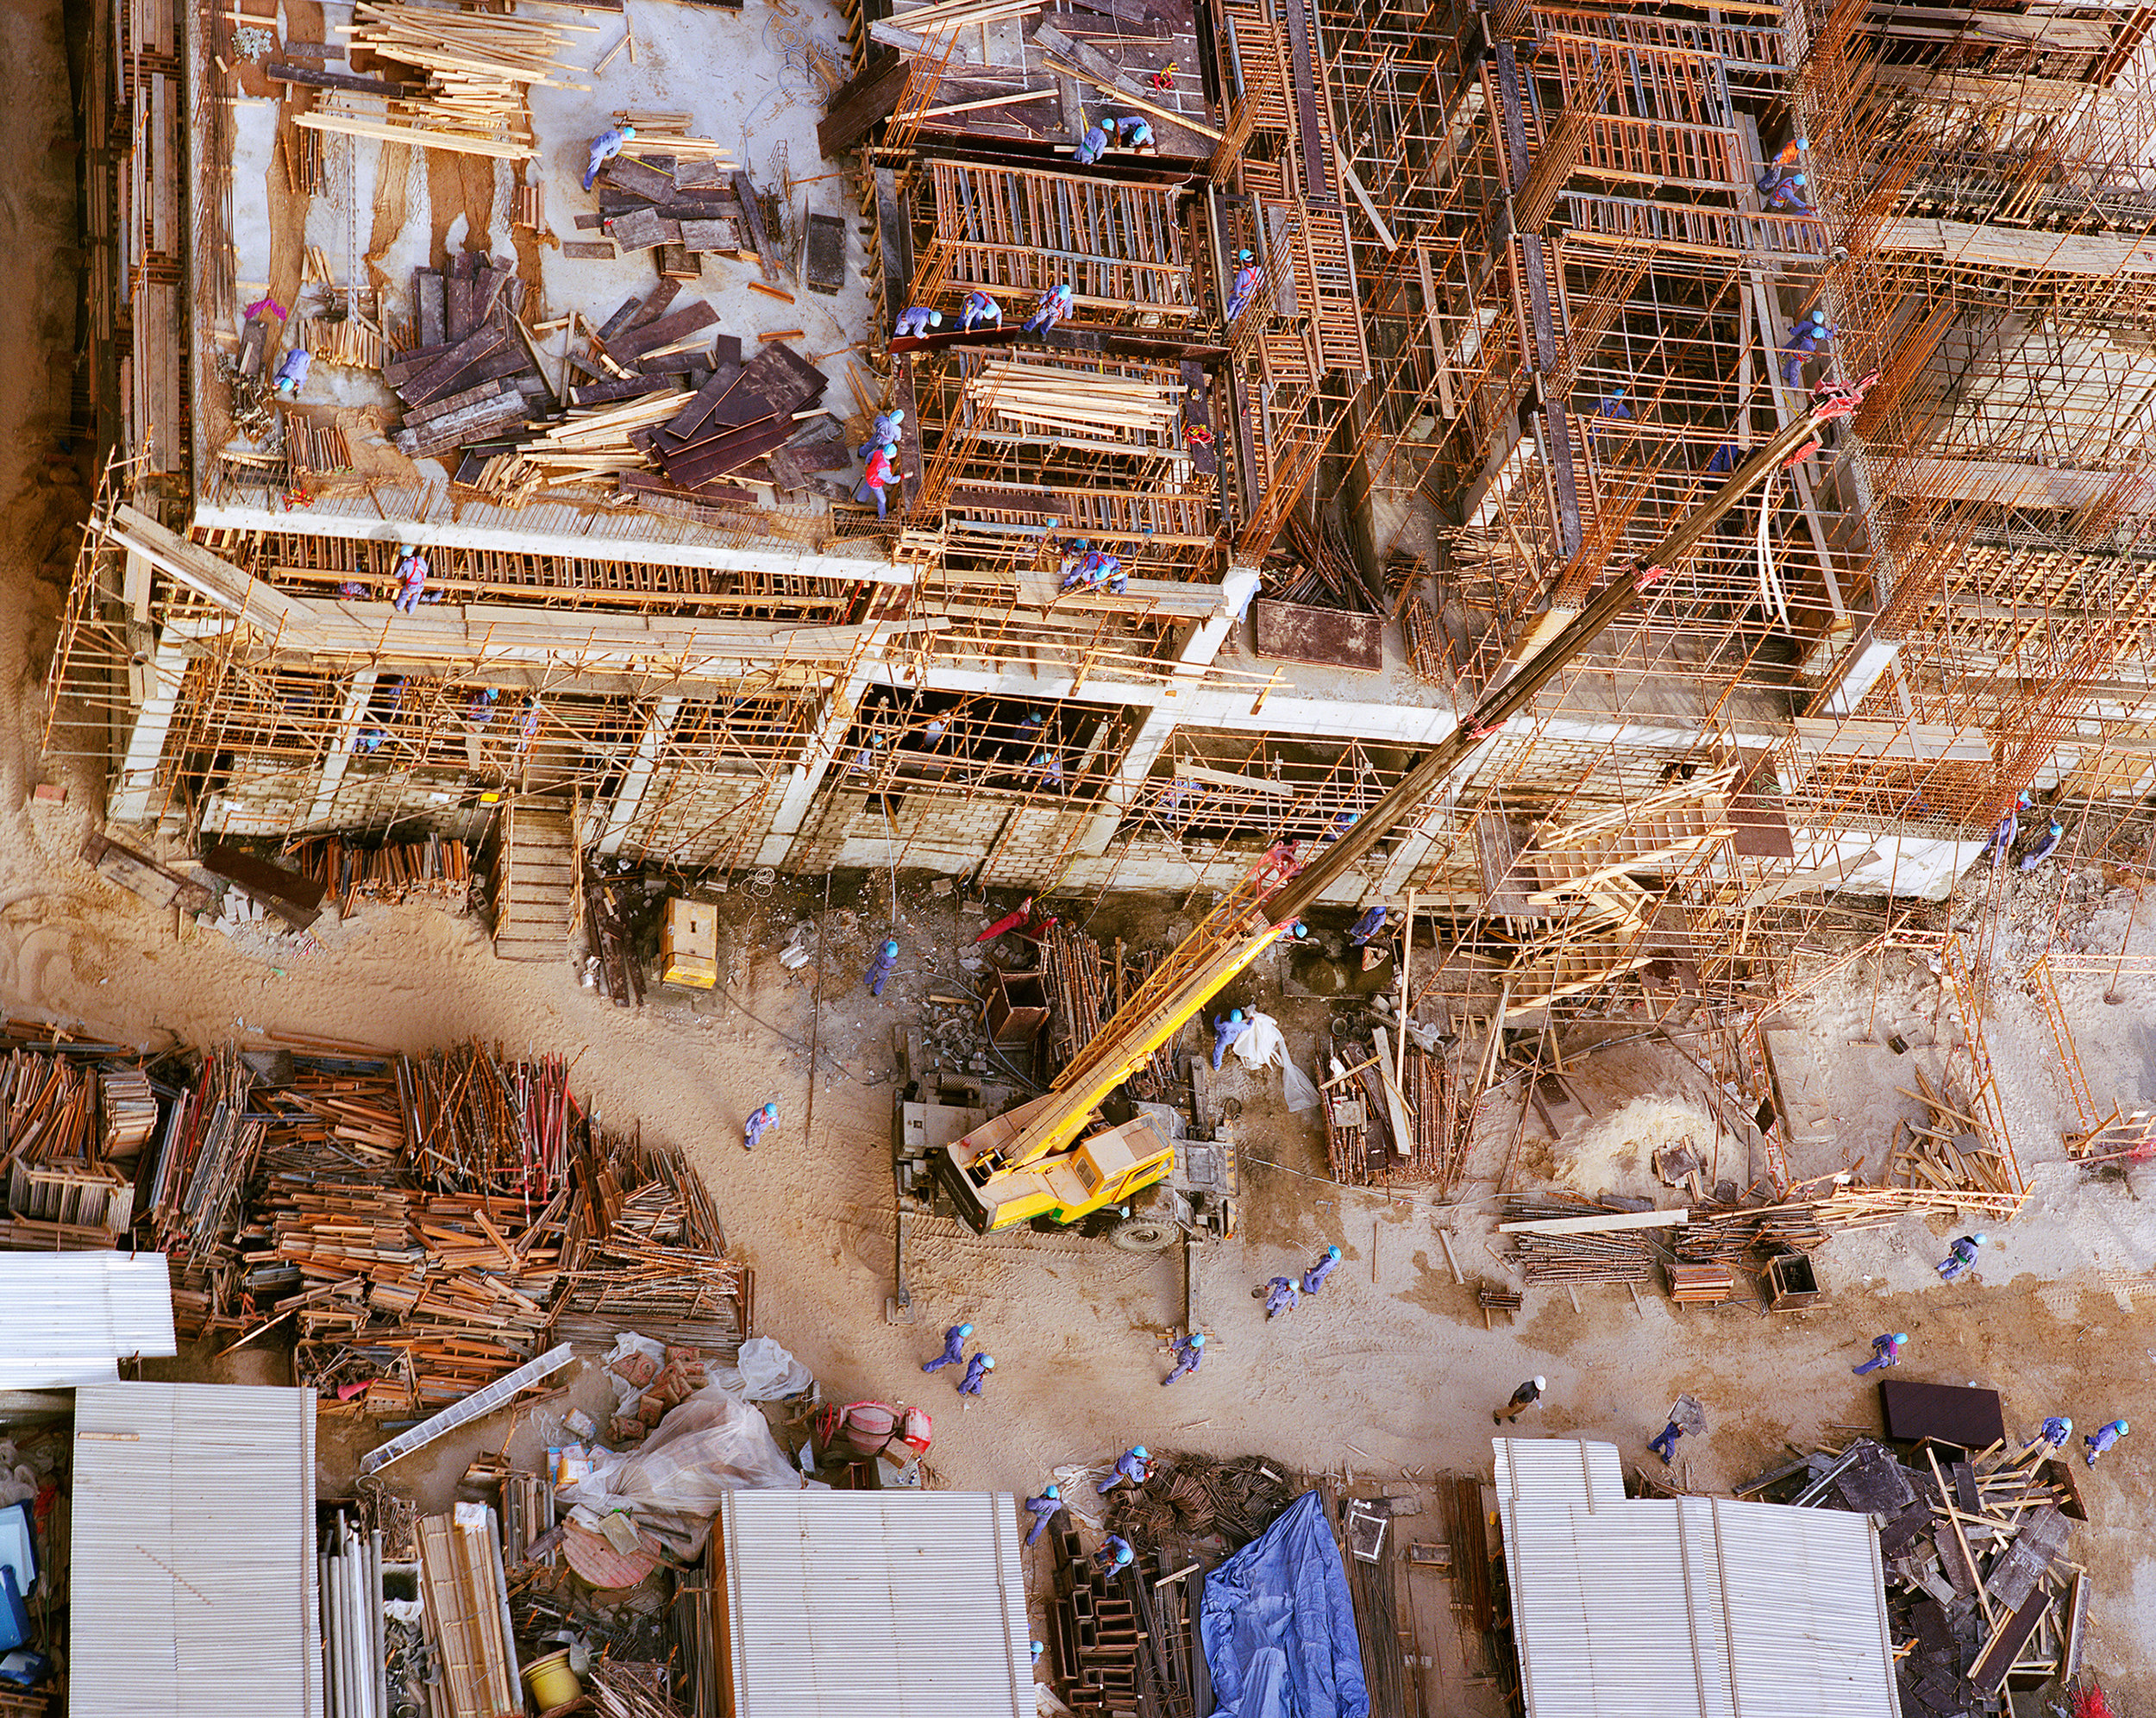 Connie Samaras,  After the American Century: Construction Laborers, Sheikh Zayed Road, 2009   Digital pigment print, 40 x 48 inches, edition of 5   Inquire